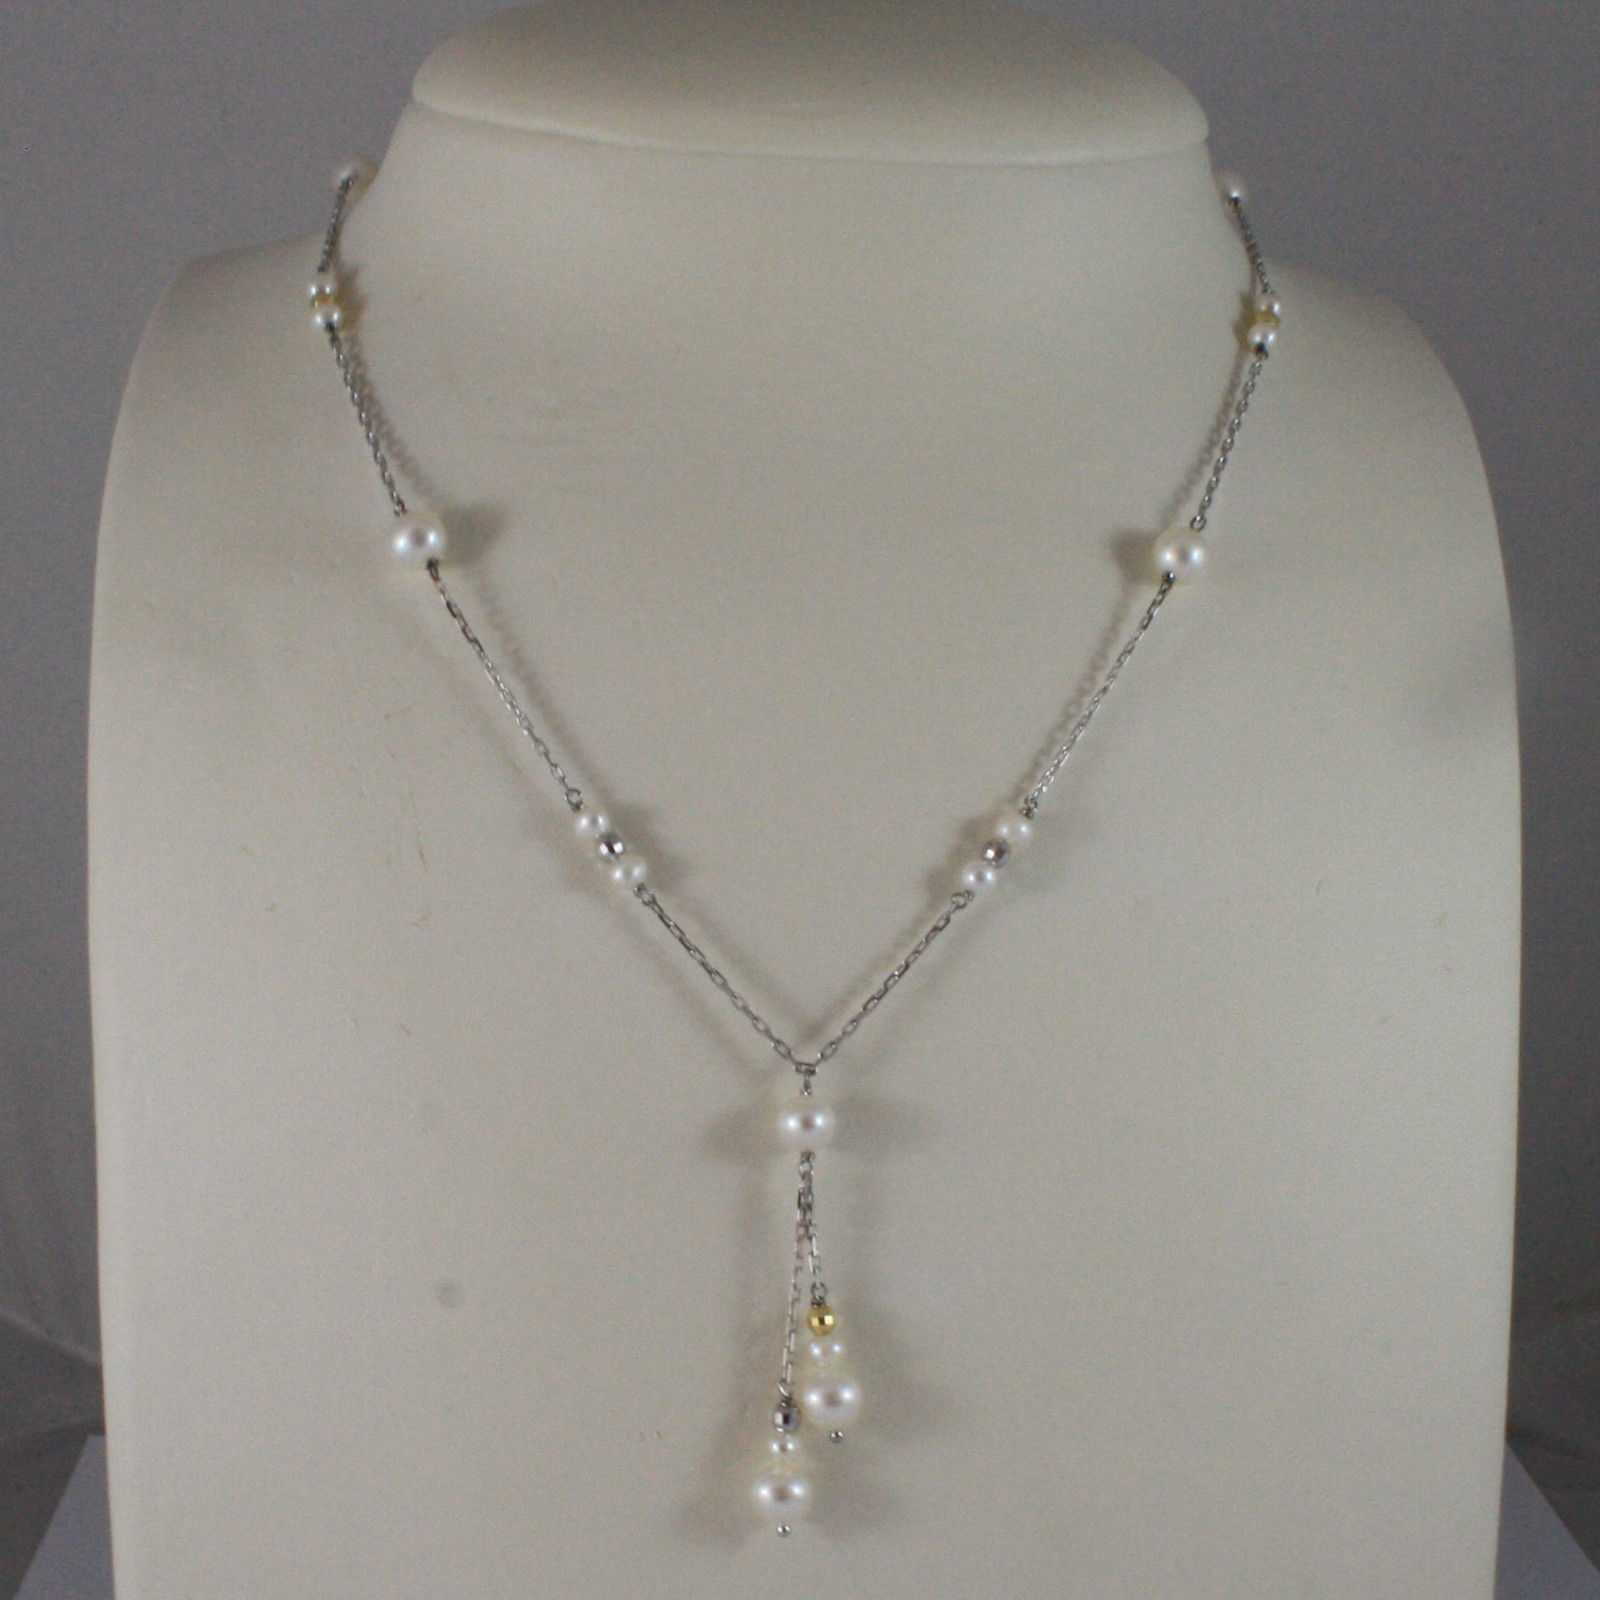 SOLID 18K WHITE GOLD NECKLACE WITH FRESHWATER WHITE PEARL AND GOLDEN BALLS